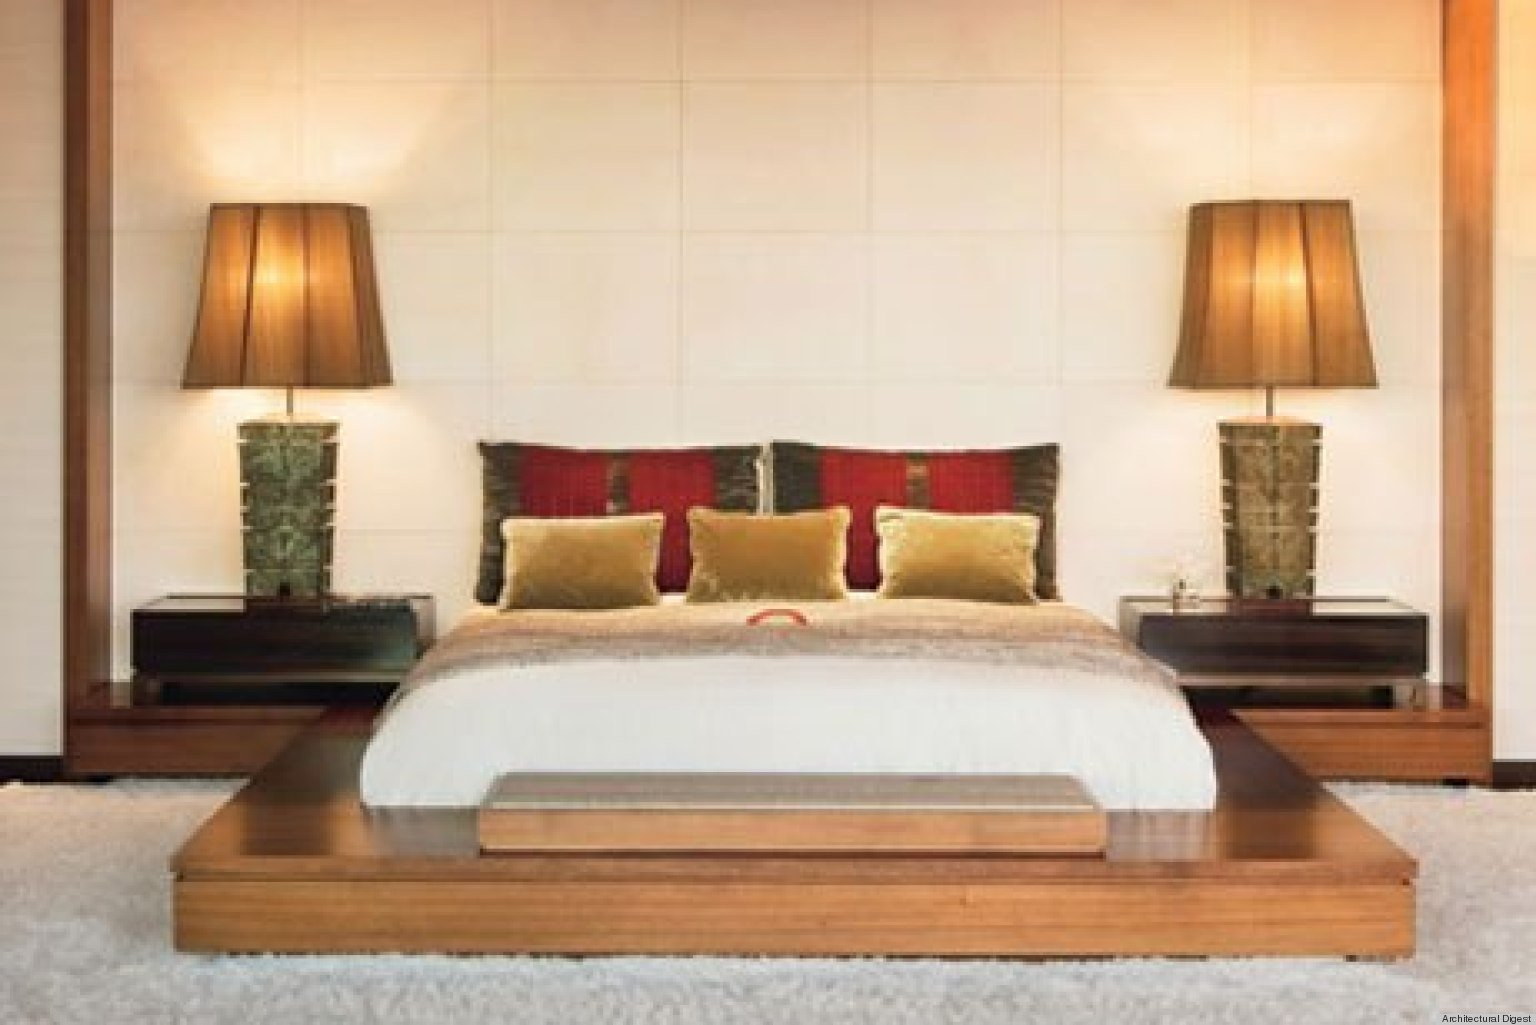 Best 10 Celebrity Bedrooms From Architectural Digest That We With Pictures